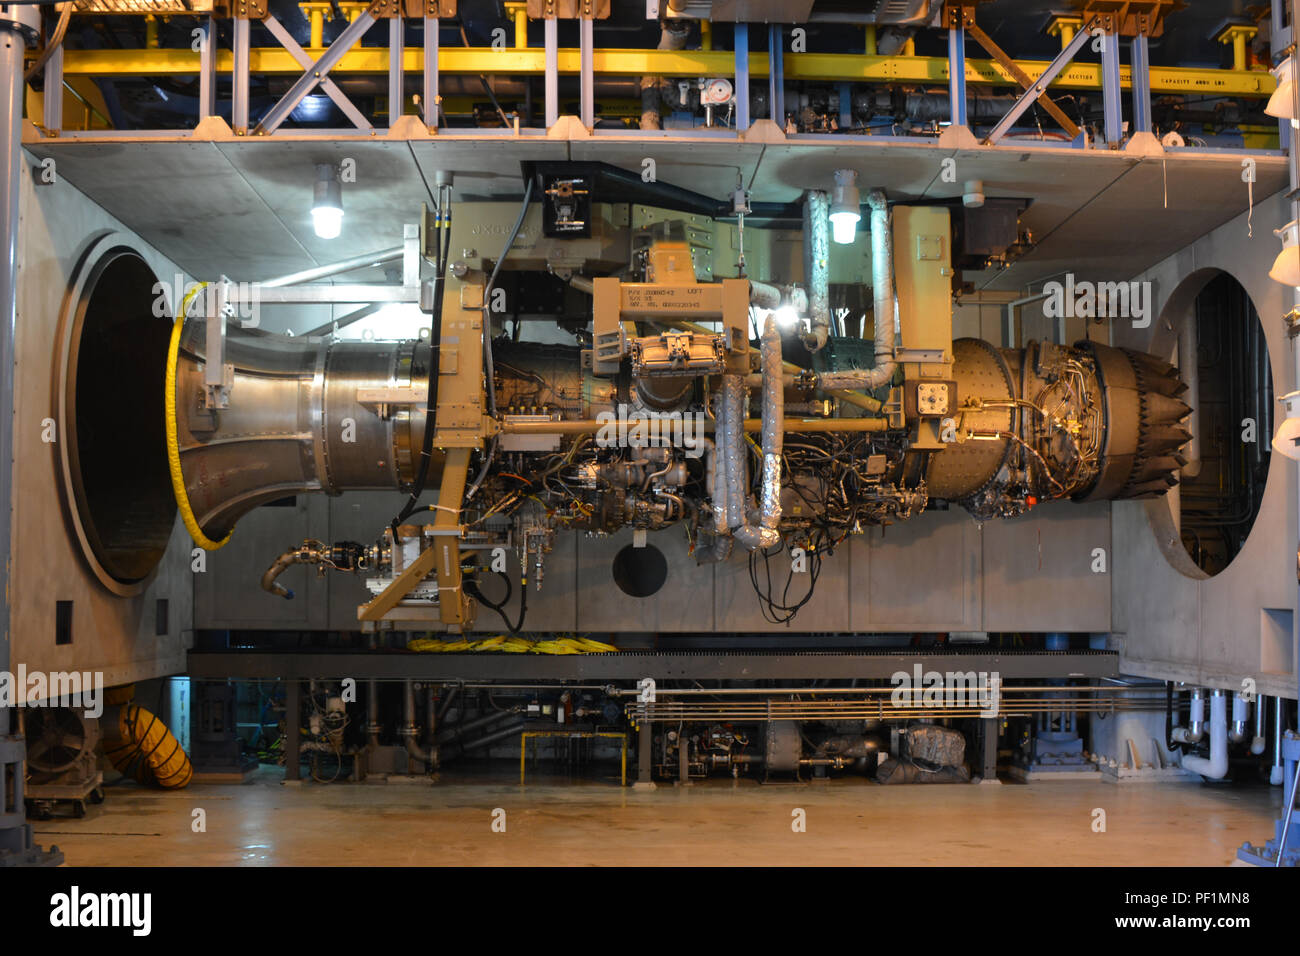 An F135-PW-100 engine, which powers the F-35 Joint Strike Fighter, undergoes salt water corrosion testing in the Arnold Engineering Development Complex SL-3 facility at Arnold Air Force Base, Tenn., on Oct 23, 2016. (U.S. Air Force Photo/Christopher D. Rogers) - Stock Image